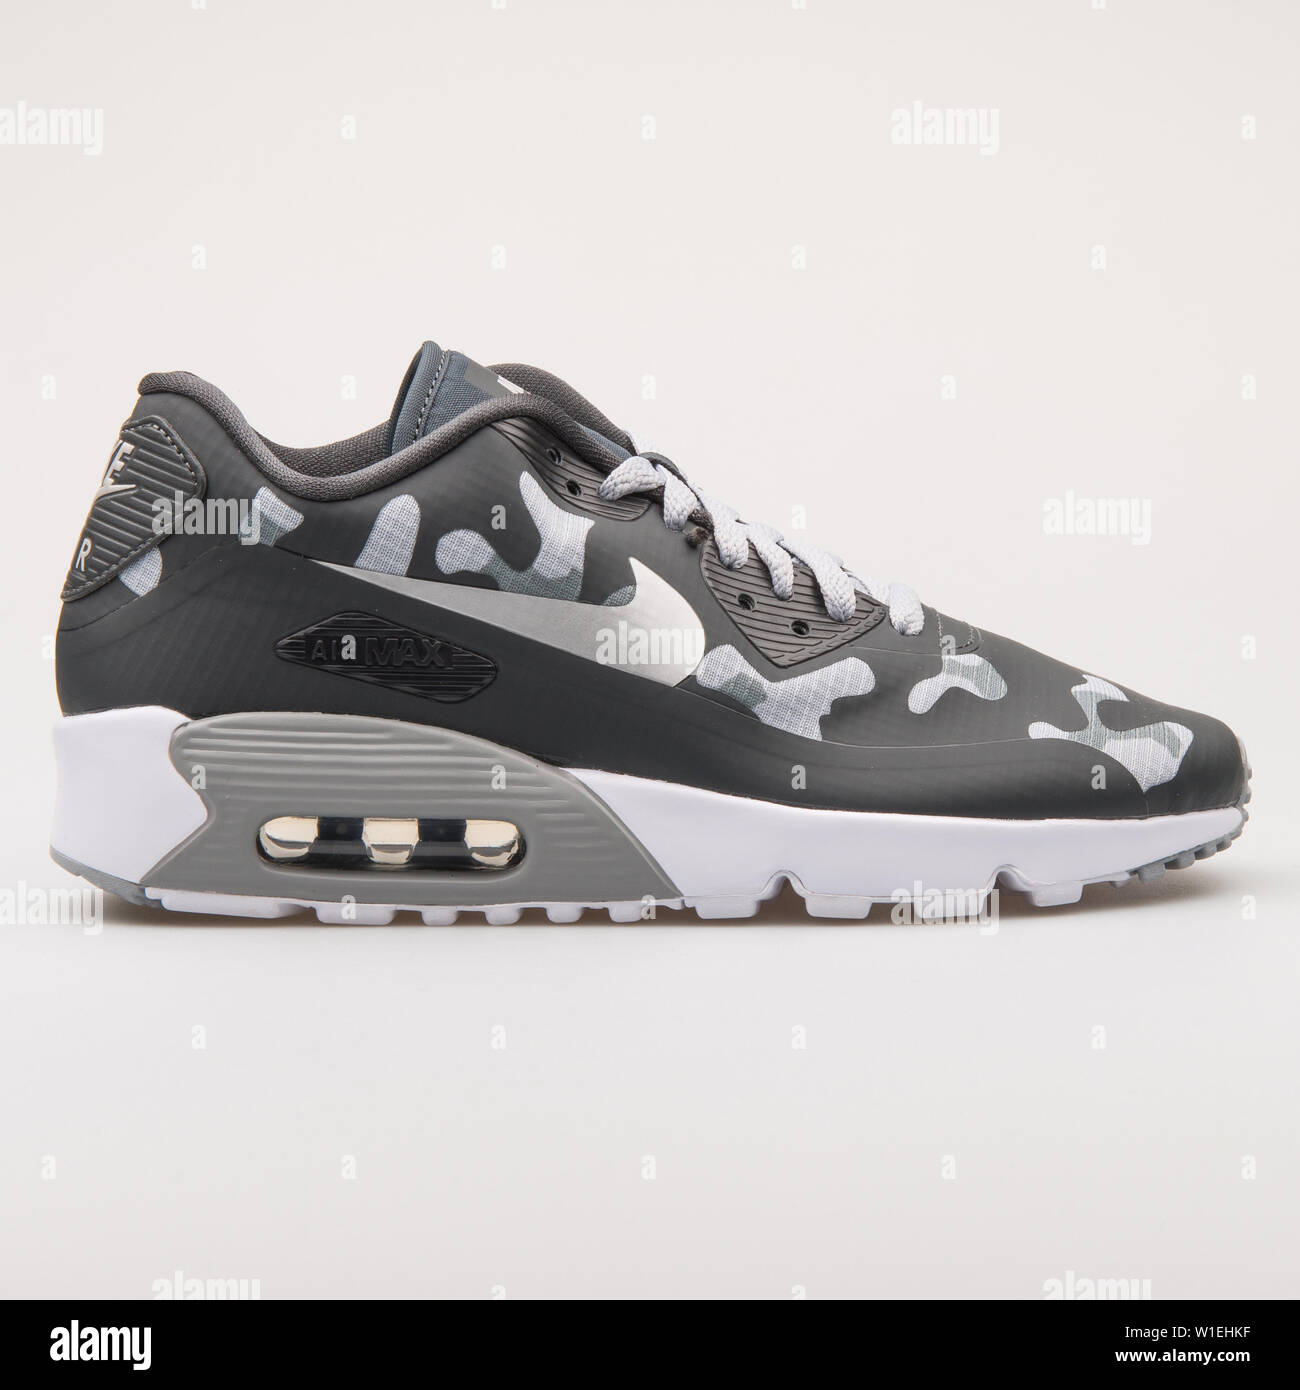 Andes Saturar fascismo  VIENNA, AUSTRIA - AUGUST 23, 2017: Nike Air Max 90 NS SE grey and black  camo sneaker on white background Stock Photo - Alamy